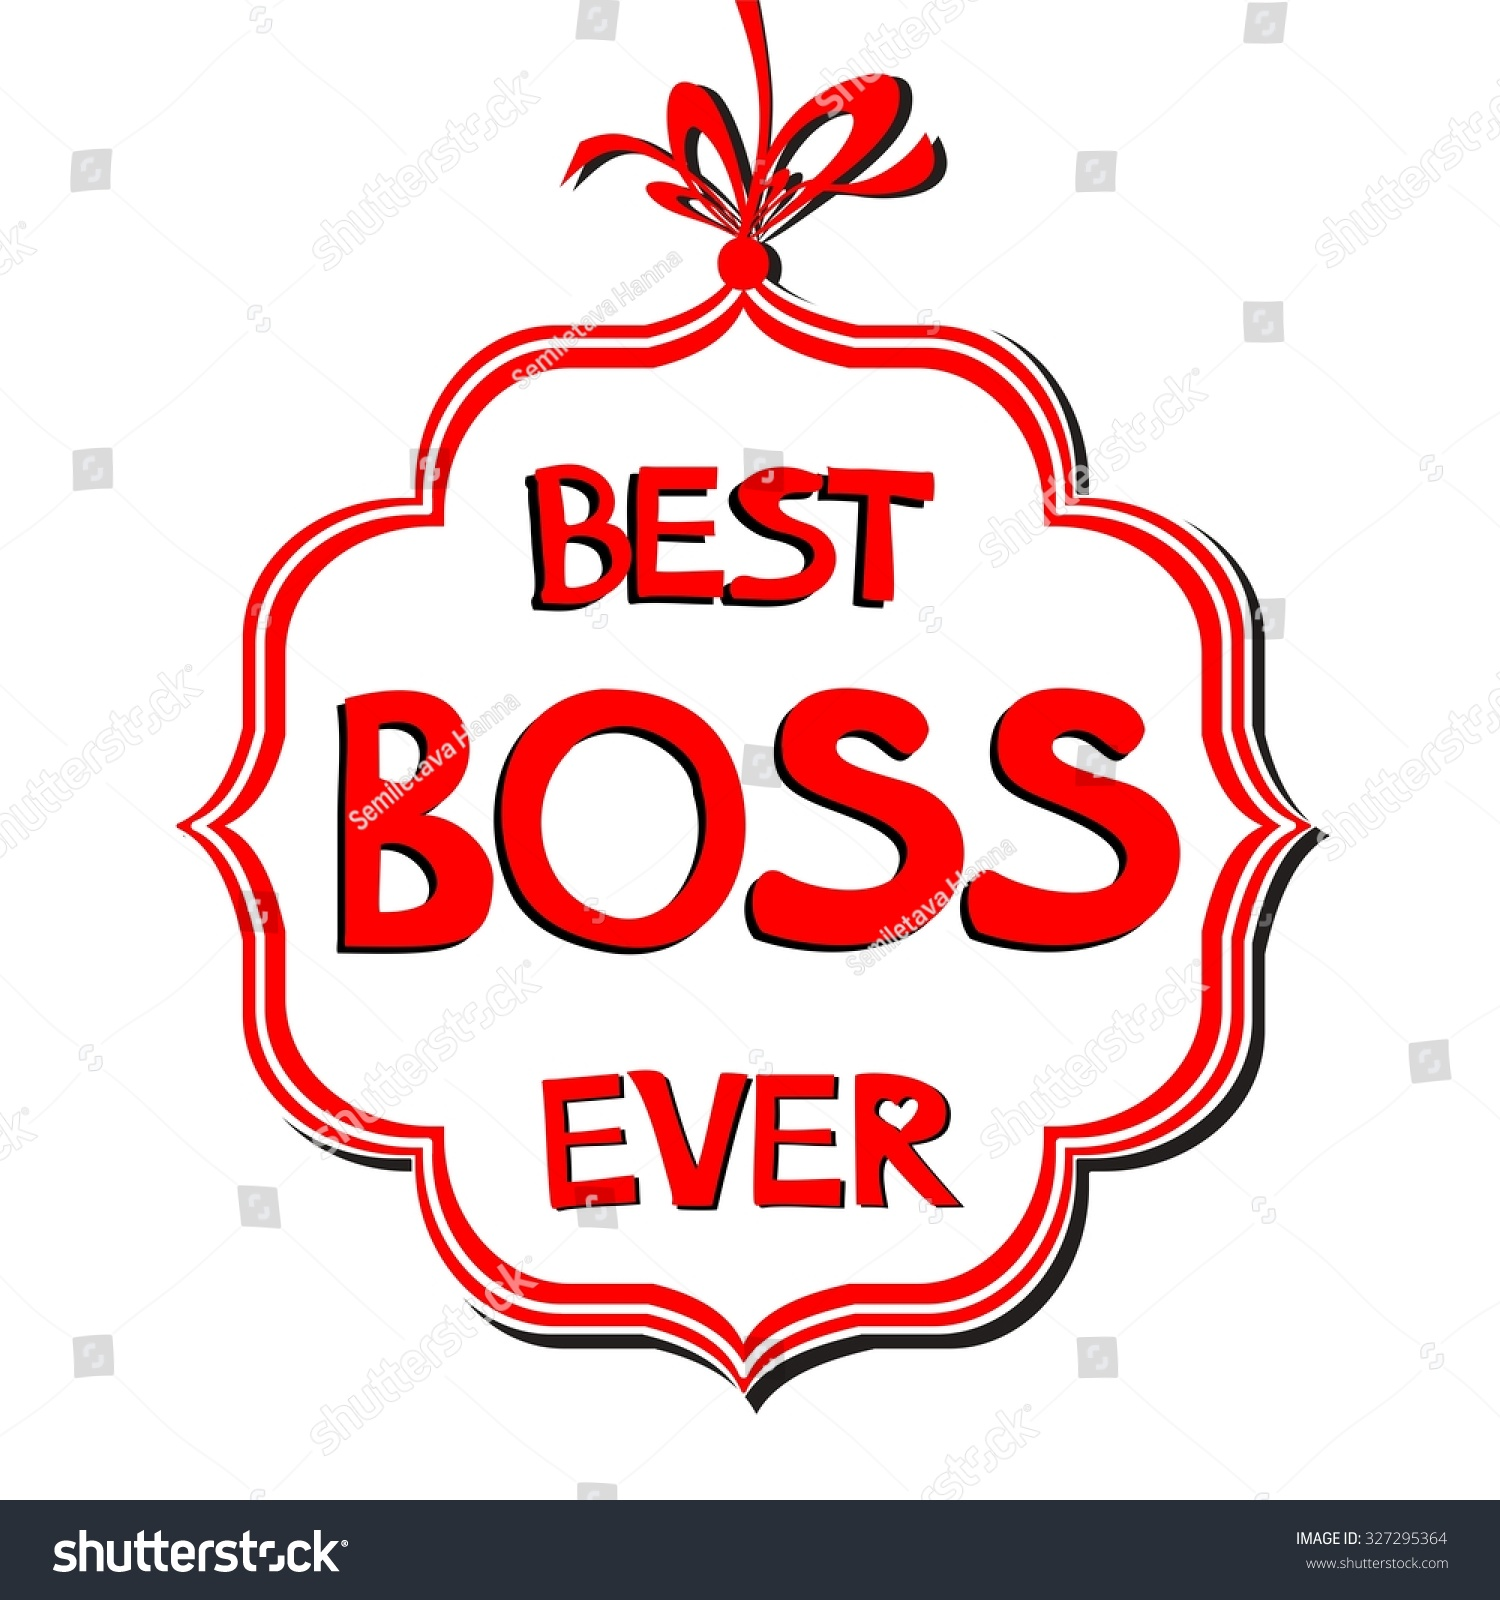 Best boss clipart svg black and white library Happy Boss\'S Day. Best Boss Ever. Illustration 327295364 - Free Clipart svg black and white library